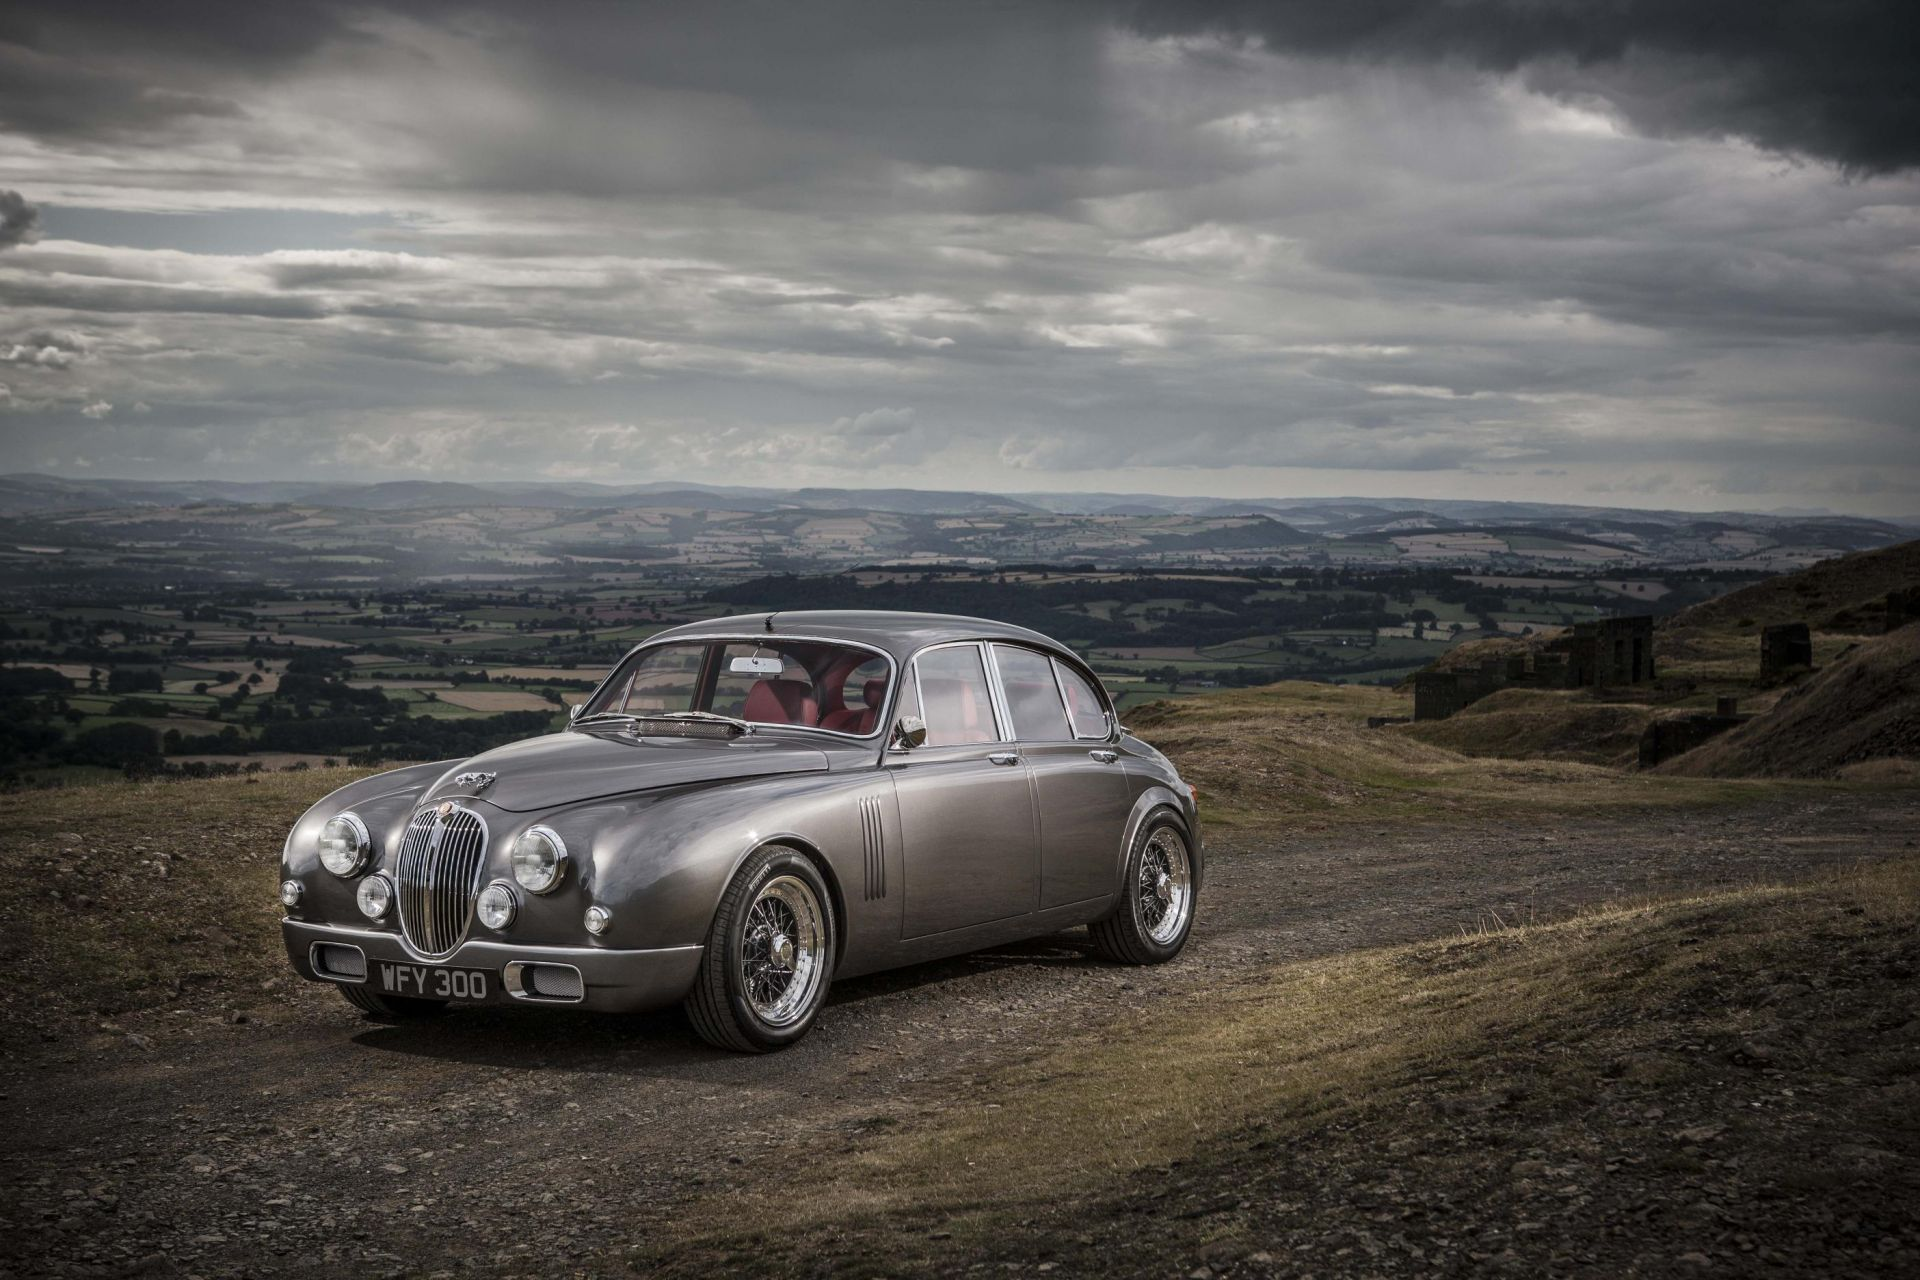 This One-Of-A-Kind Jaguar Mark 2 Combines Classic Elegance With Modern Reliability